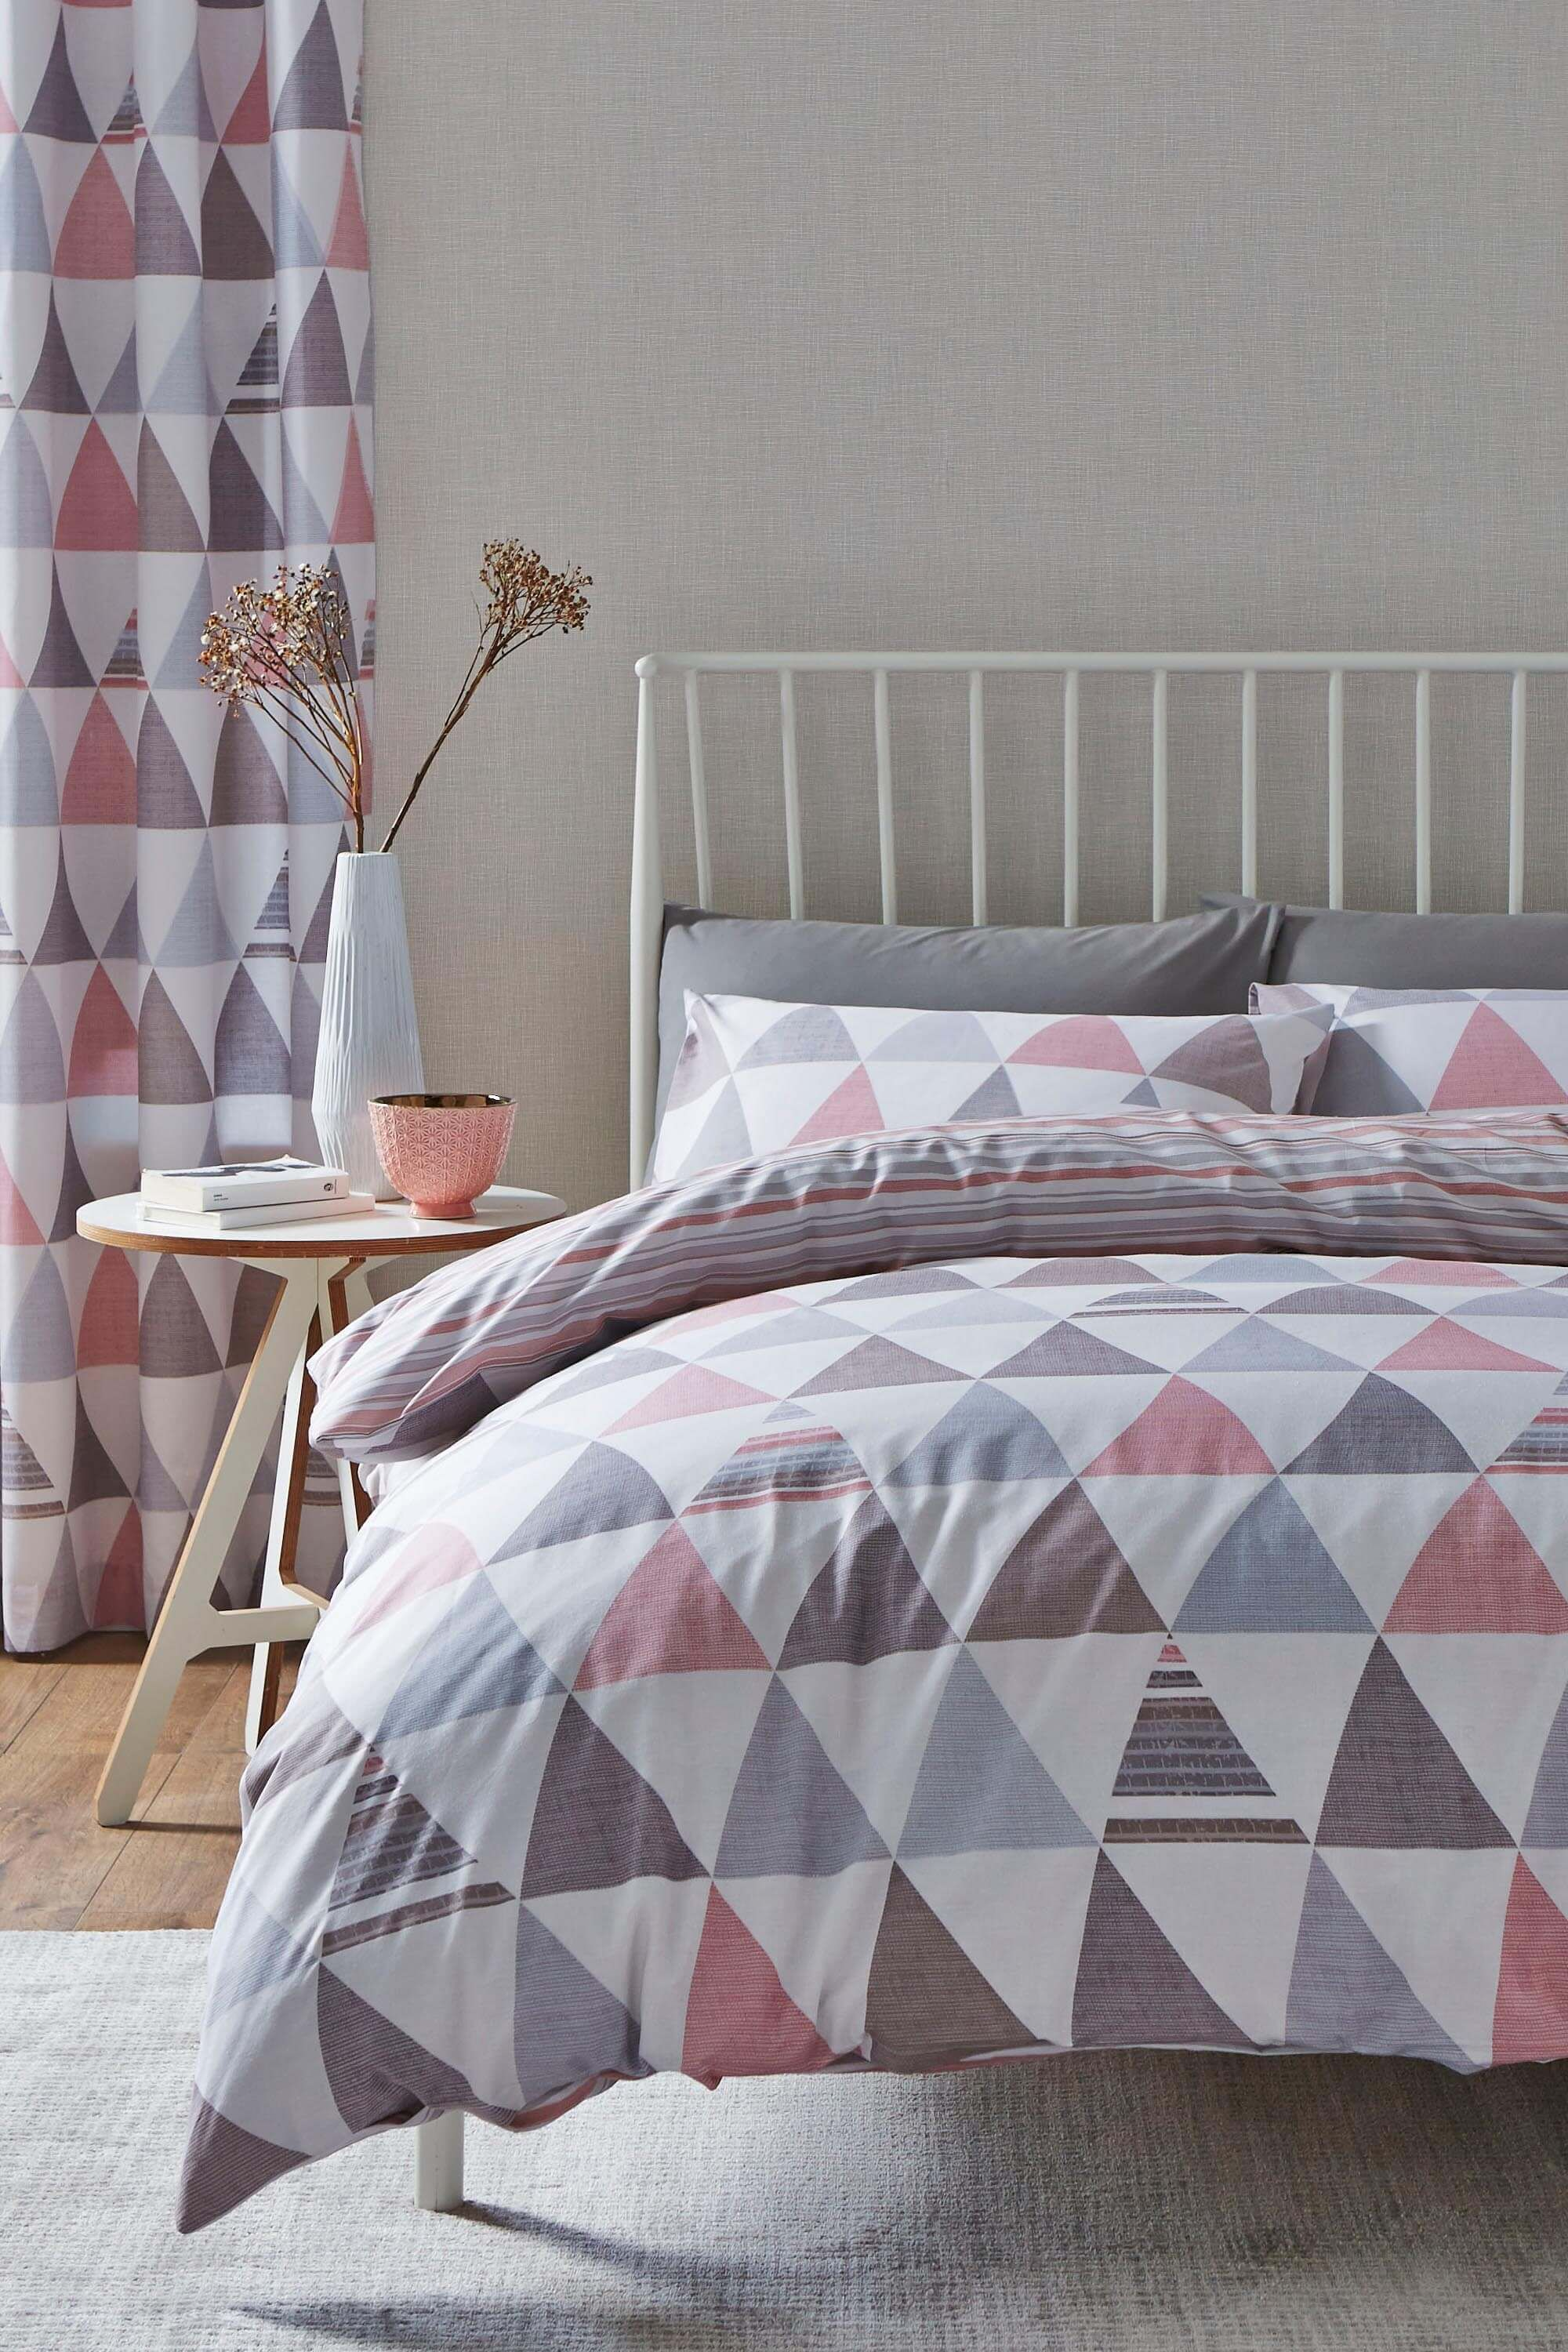 cover kobe bedclothes high bedding sheet products bryant duvet linen set bed pillowcase quality